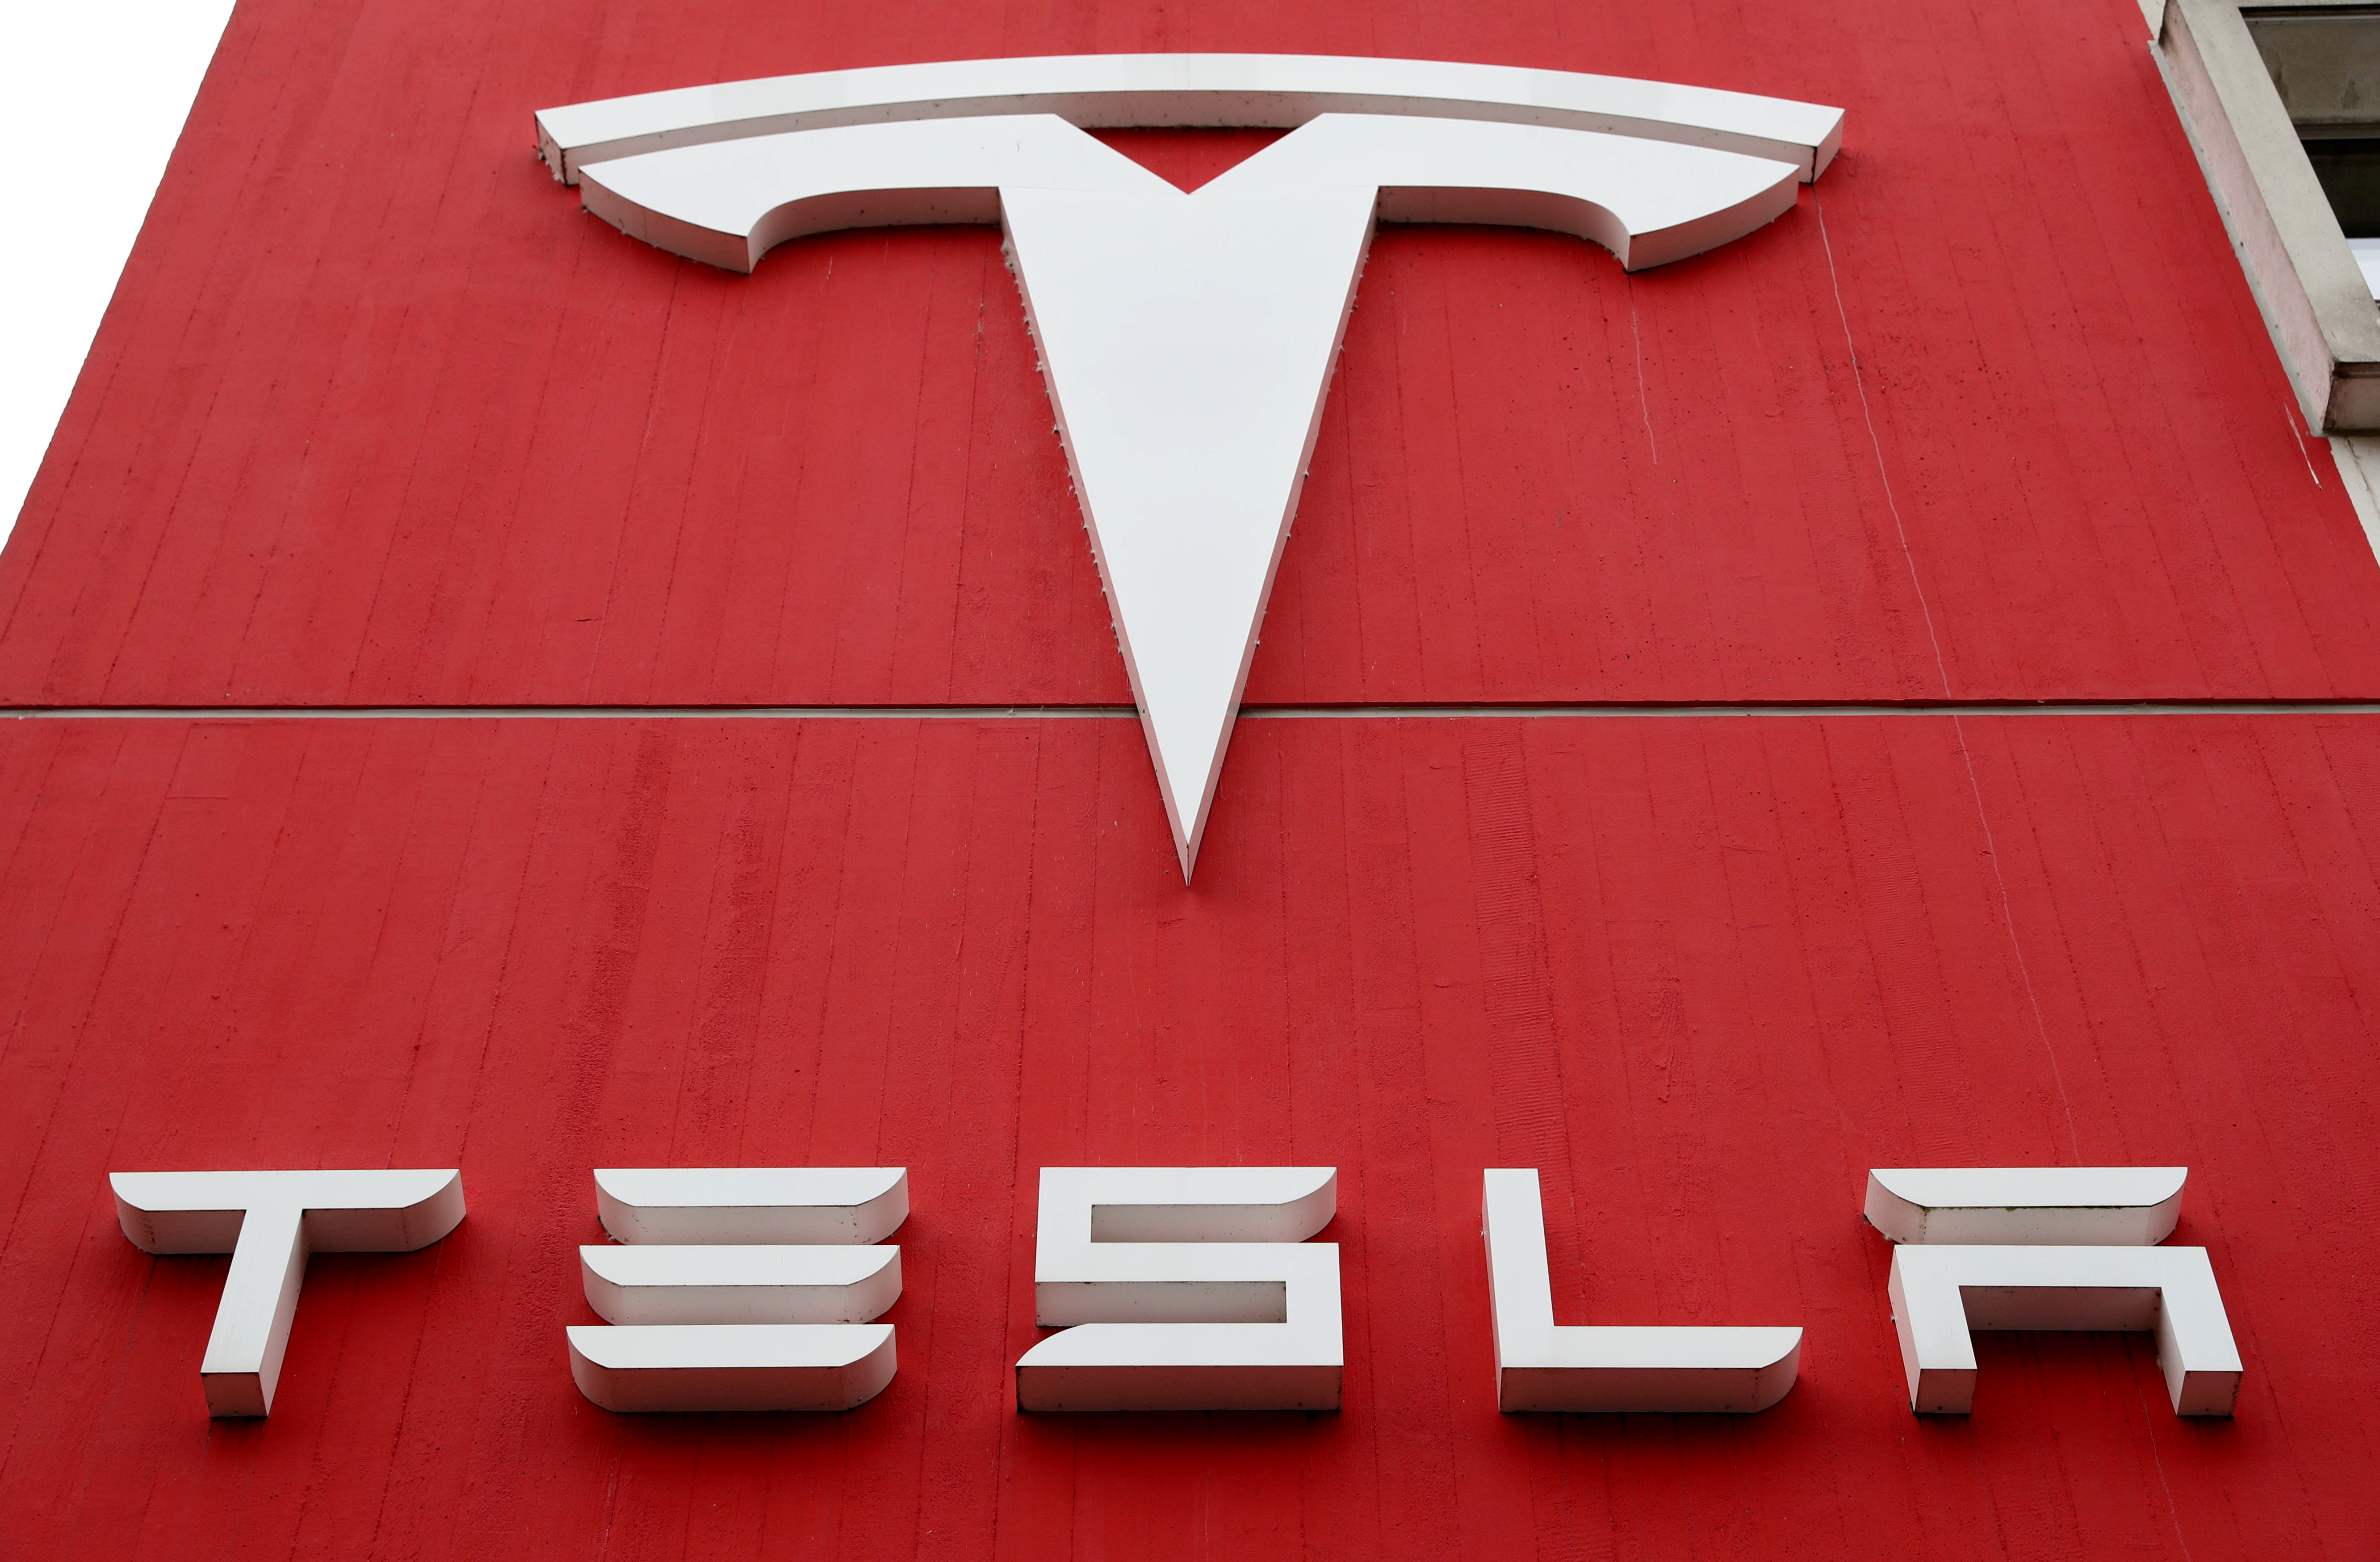 FILE PHOTO: The logo of car manufacturer Tesla is seen at a branch office in Bern, Switzerland October 28, 2020. REUTERS/Arnd Wiegmann/File Photo/File Photo